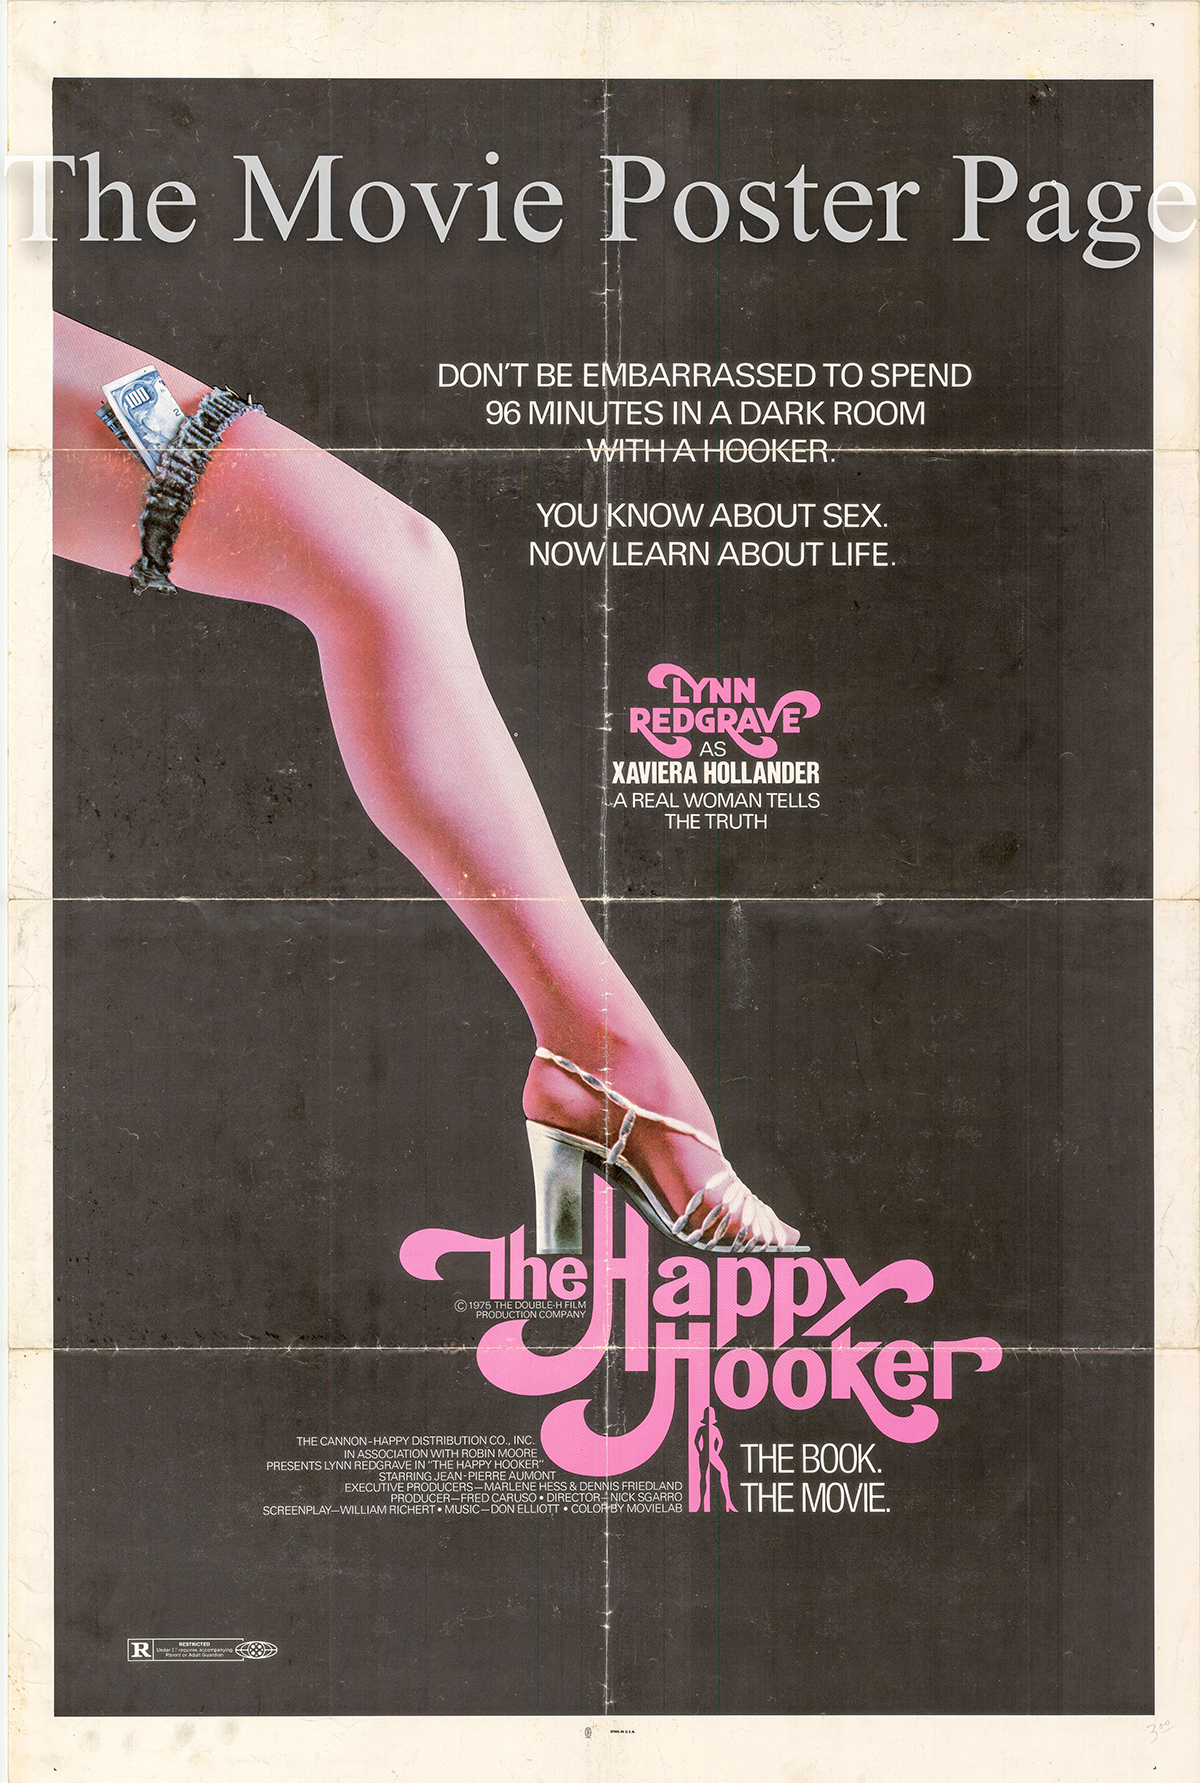 Pictured is a US one-sheet promotional poster for the 1975 Nicholas Sgarro film The Happy Hooker starring Lynn Redgrave as Xaviera Hollander.